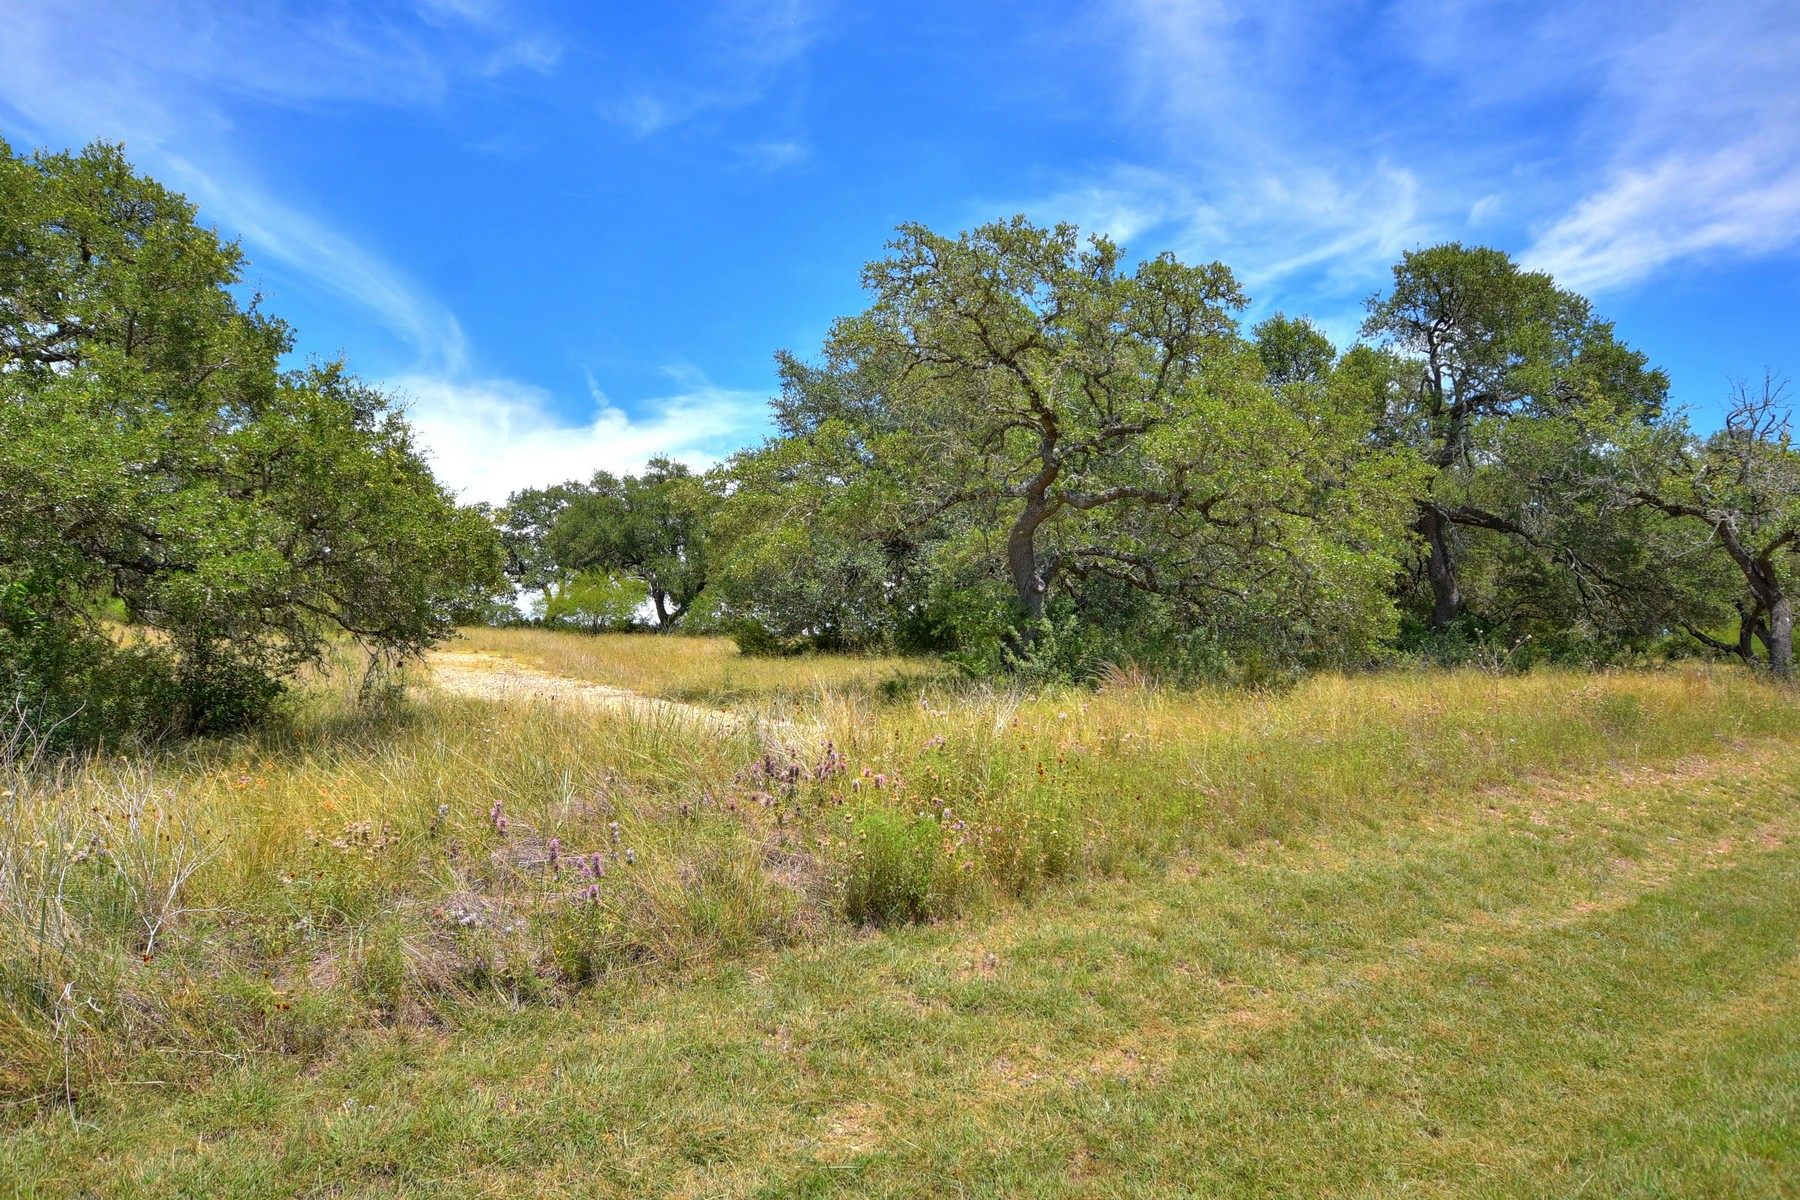 Land for Sale at Beautiful Belvedere with Large Shade Trees 8417 Lakewood Ridge Cv Austin, Texas 78738 United States